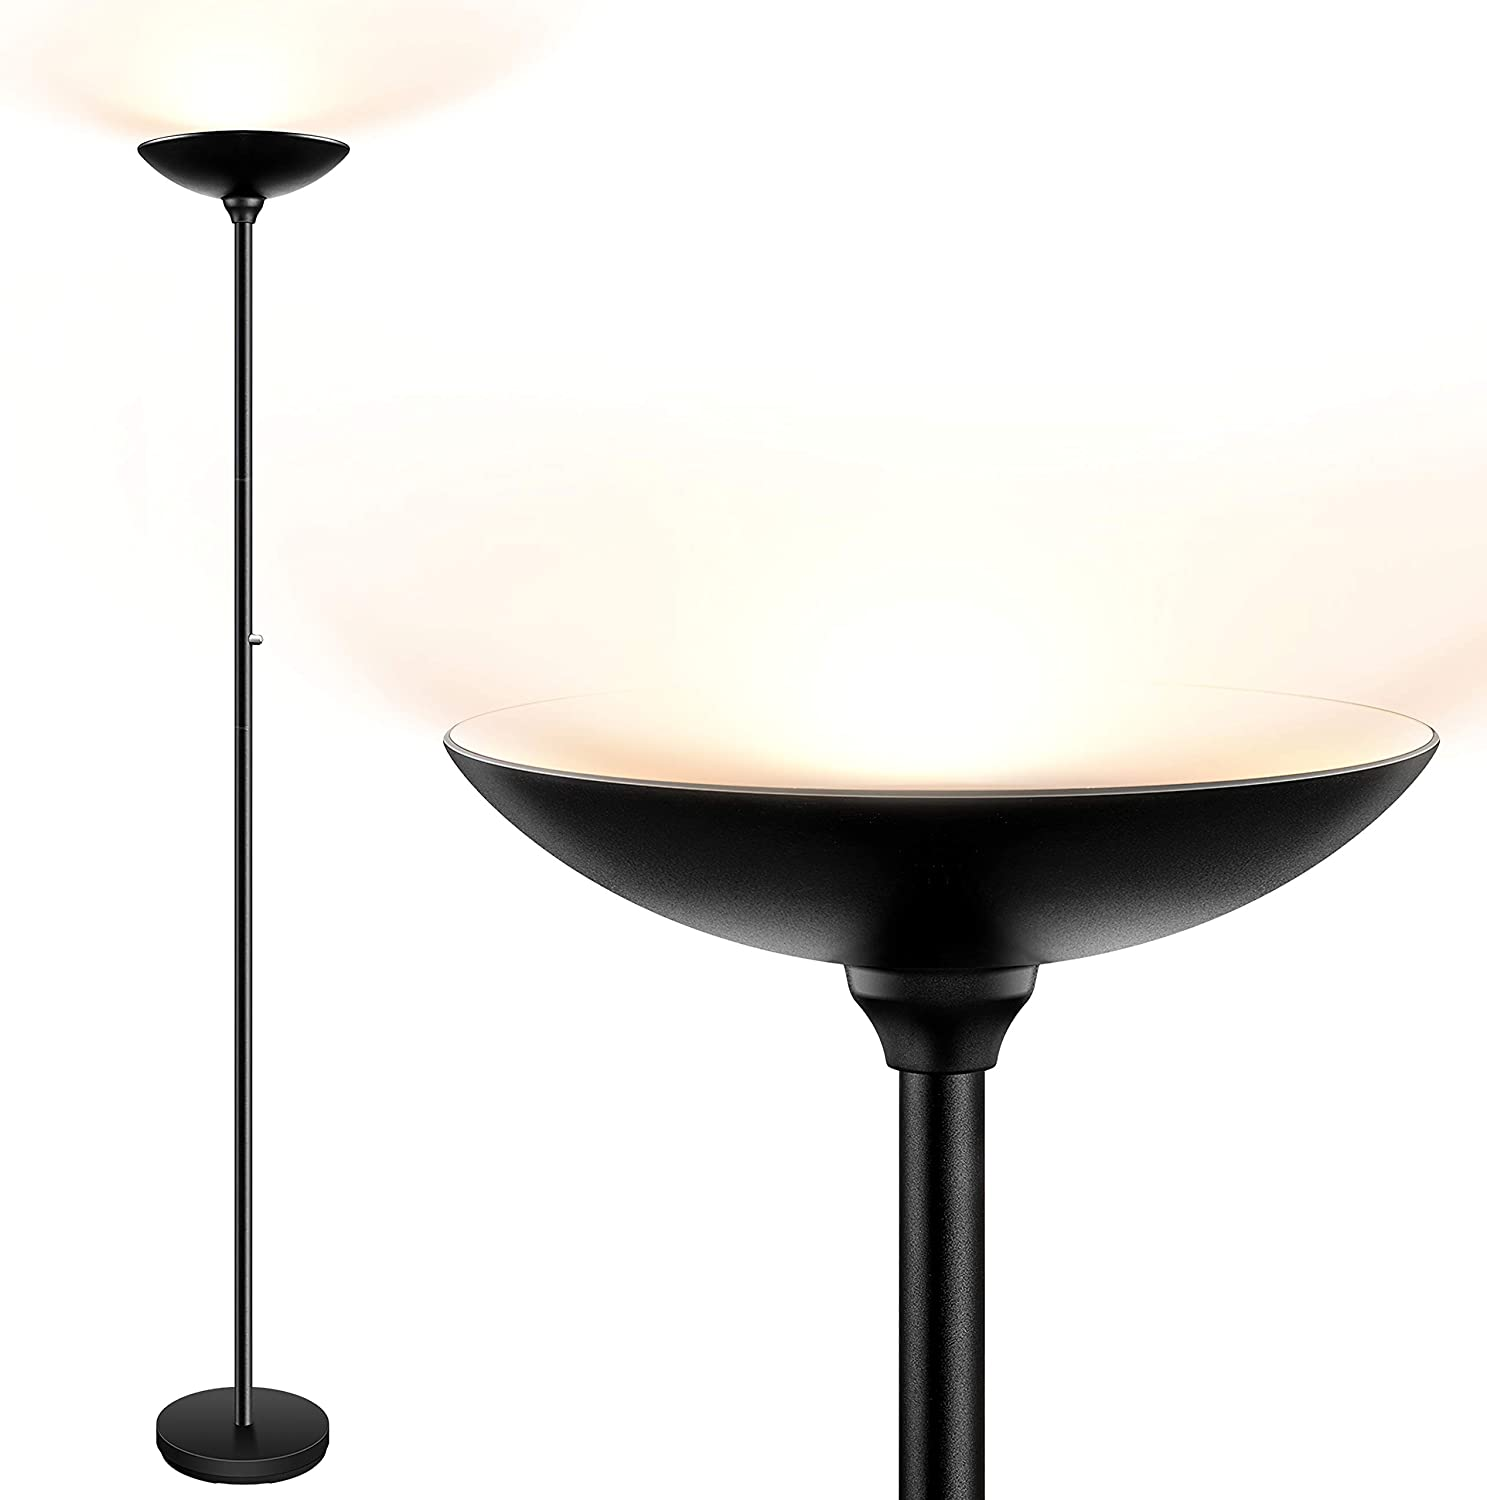 Torchiere Floor Lamp LED lamps 24W Bright OFFer 2400LM safety L Super